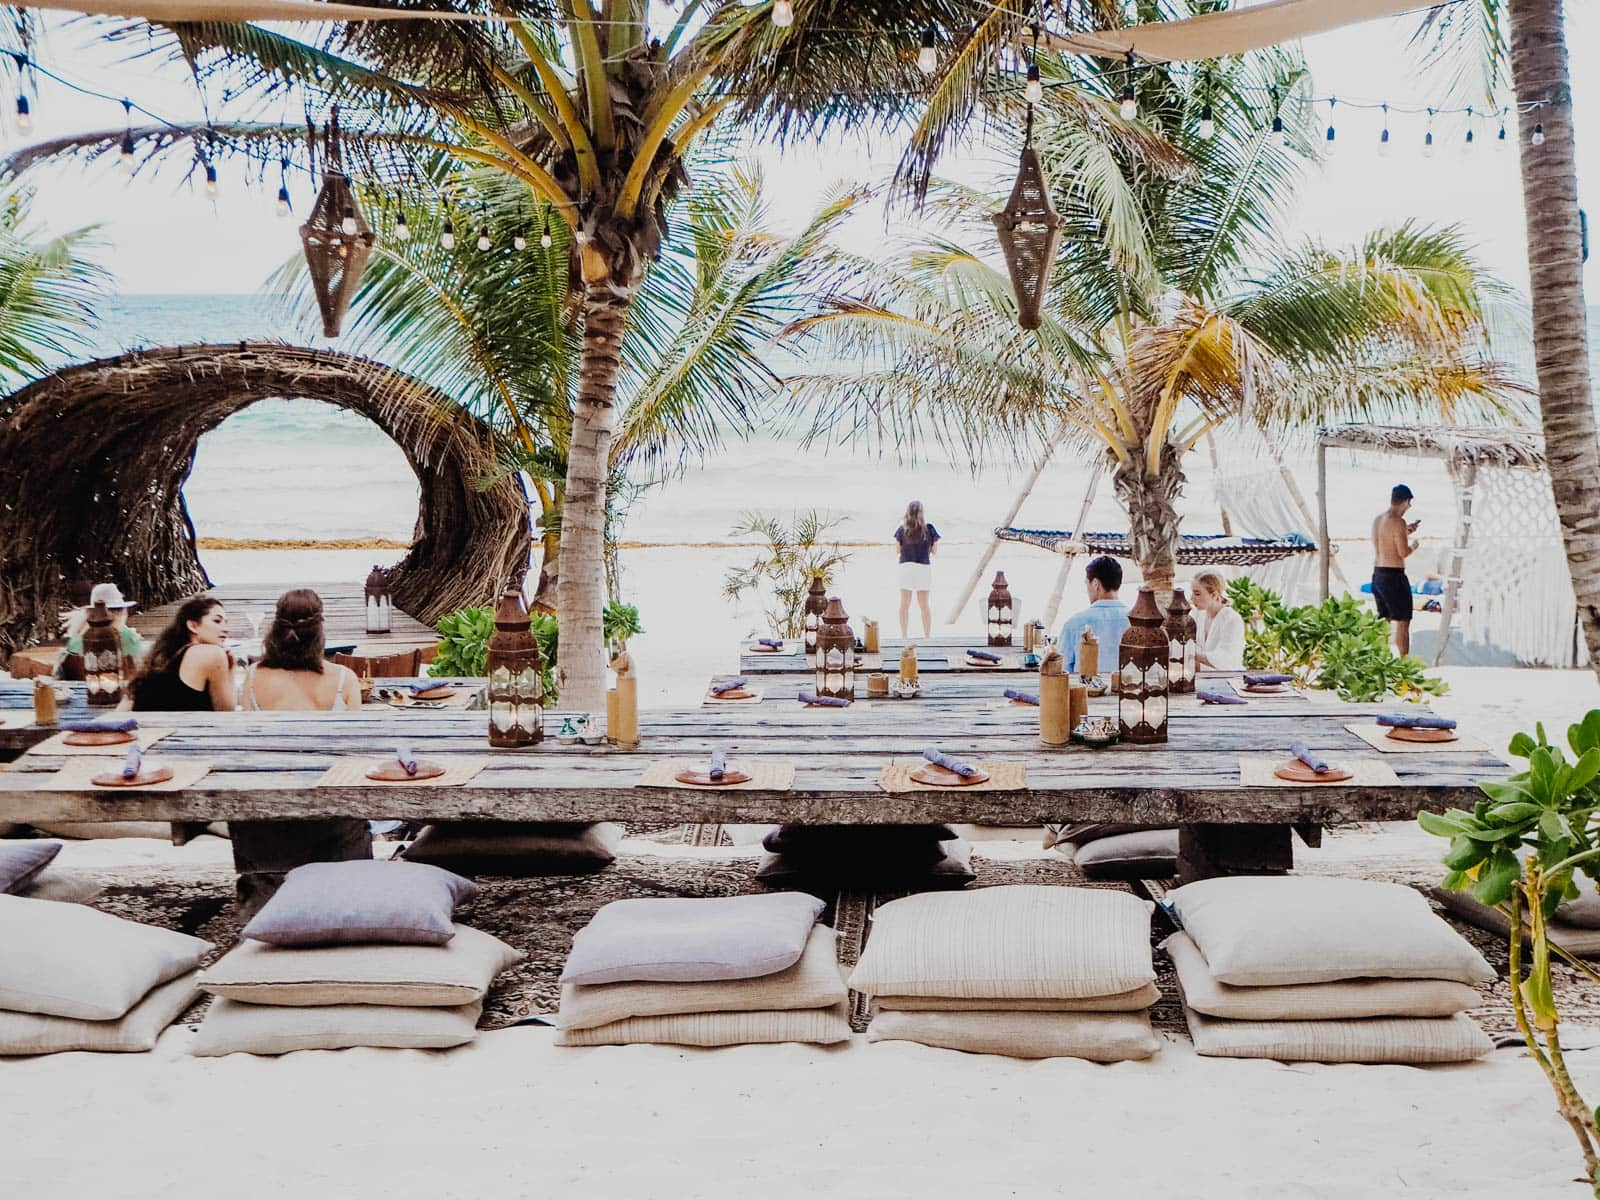 The essential Foodie's Guide to Tulum, Mexico: find out where to eat, play, shop, drink, and eat some more in the beachside paradise of Tulum!